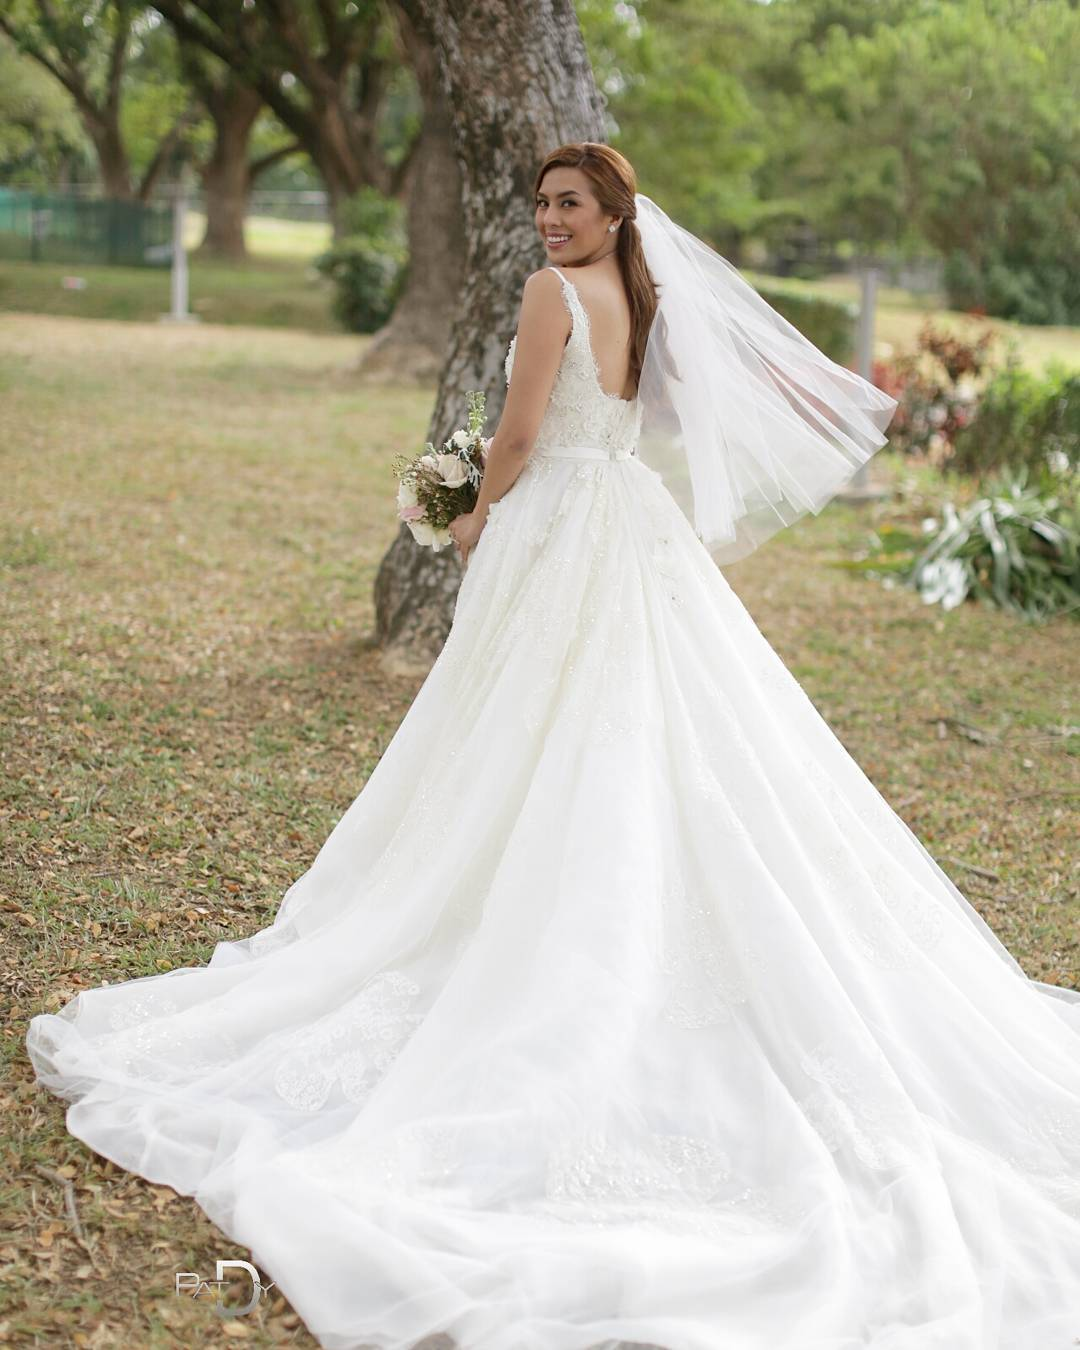 Iya Wedding Gown: 9 Things You You Need To Know About Nikki Gil And BJ